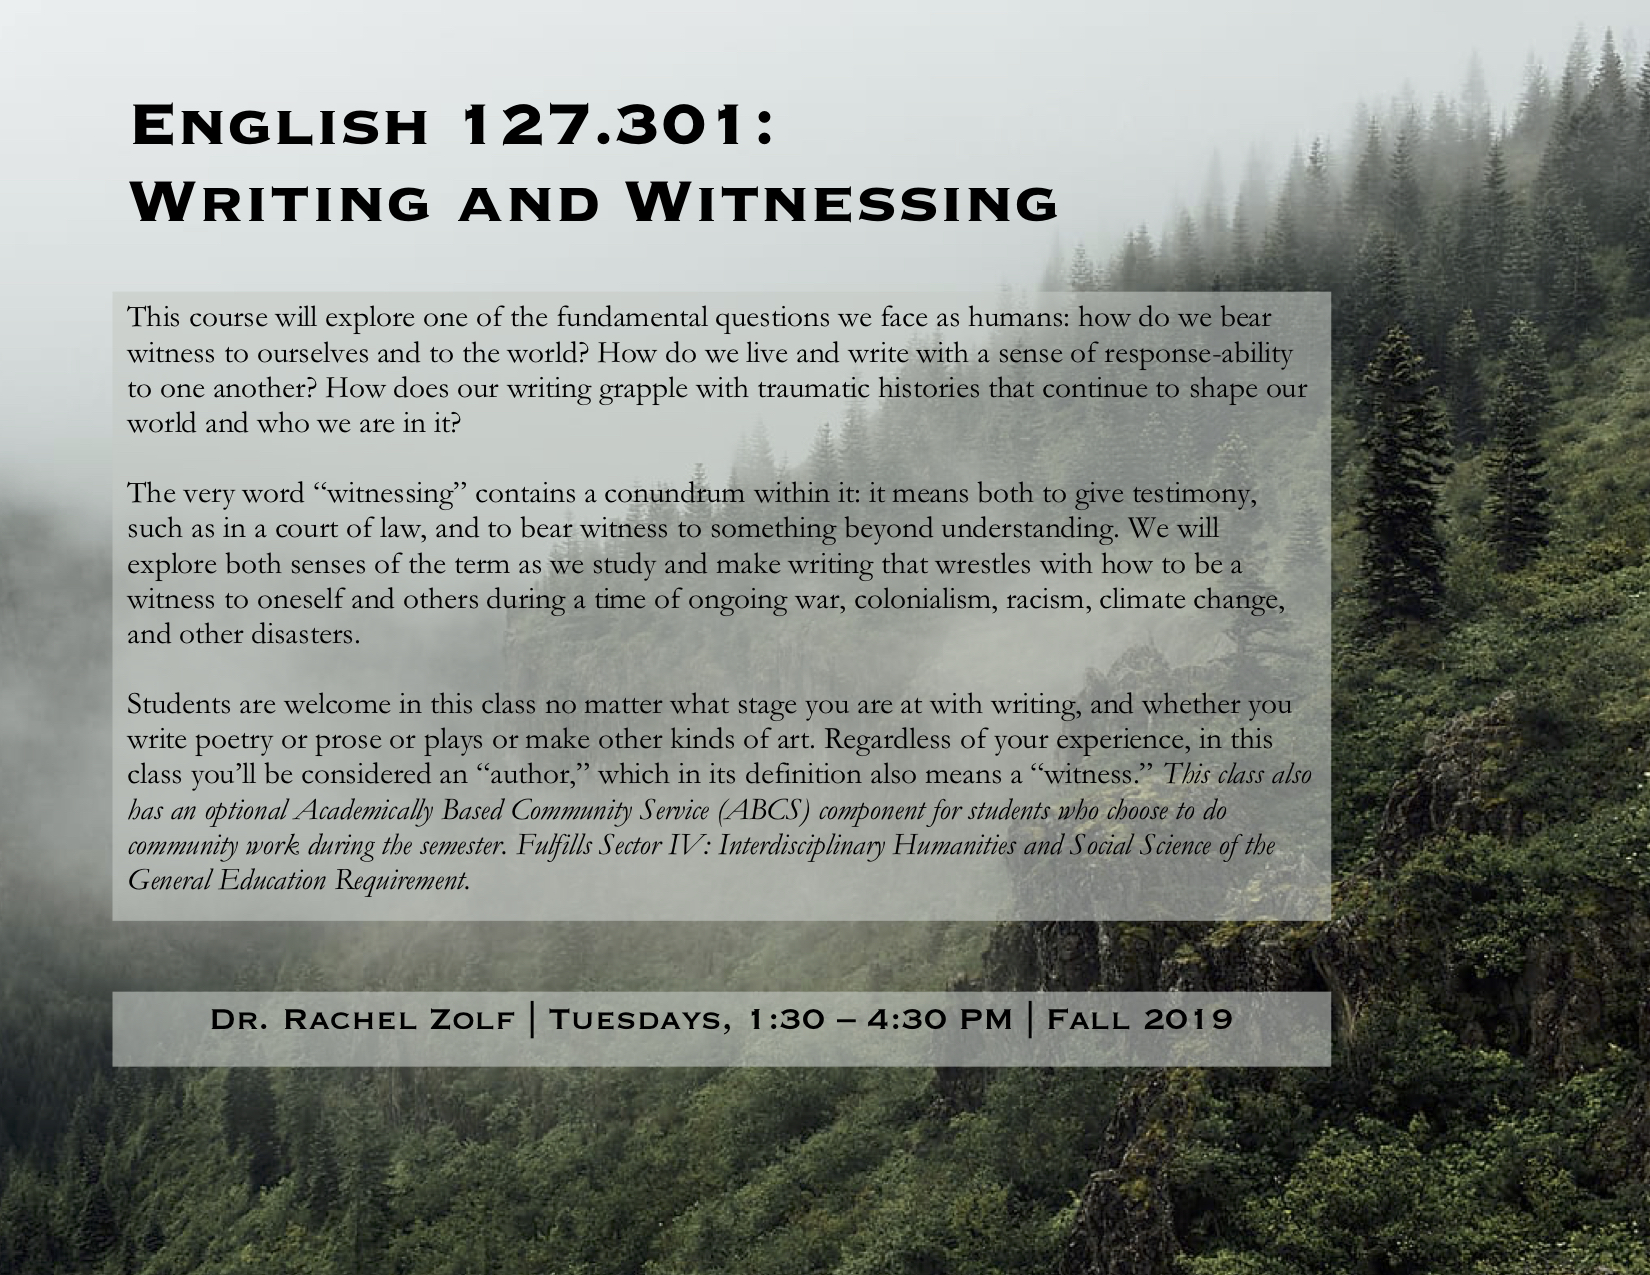 English 127 course description